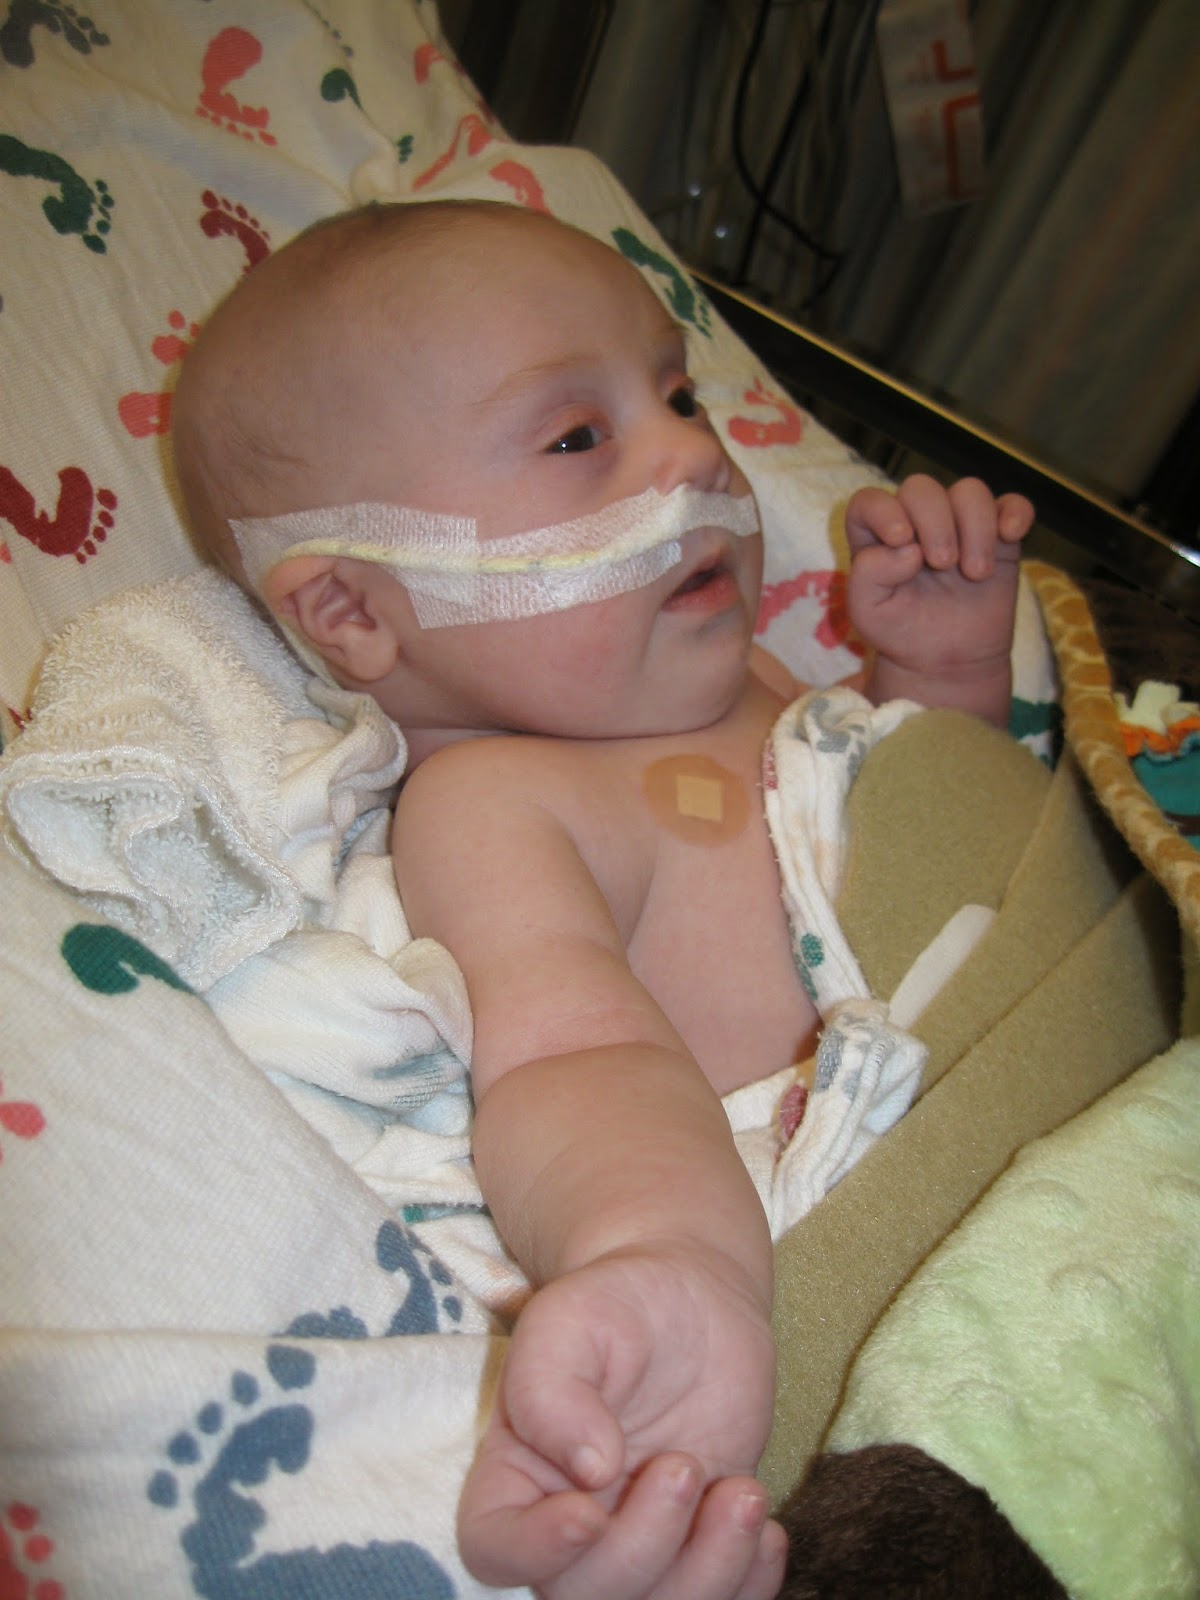 Jacob with his NG tube due to failure to thrive and reflux